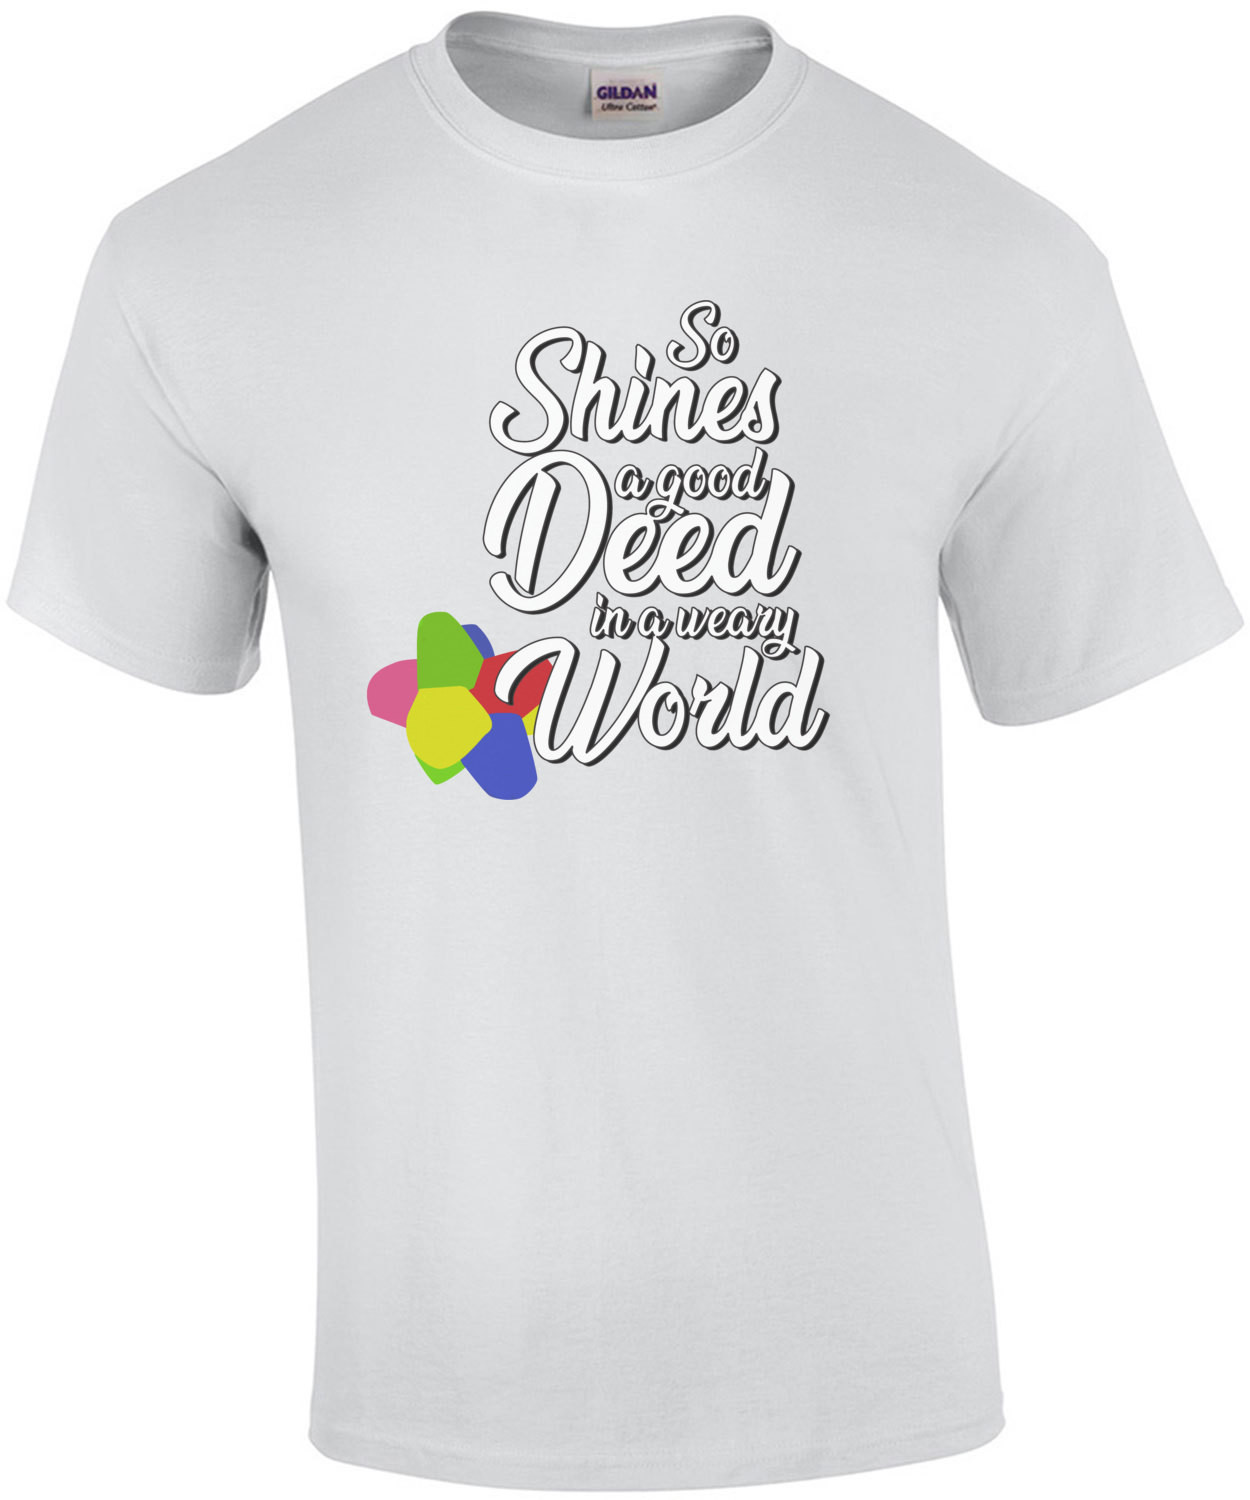 So shines a good deed in a weary world - Willy Wonka t-shirt